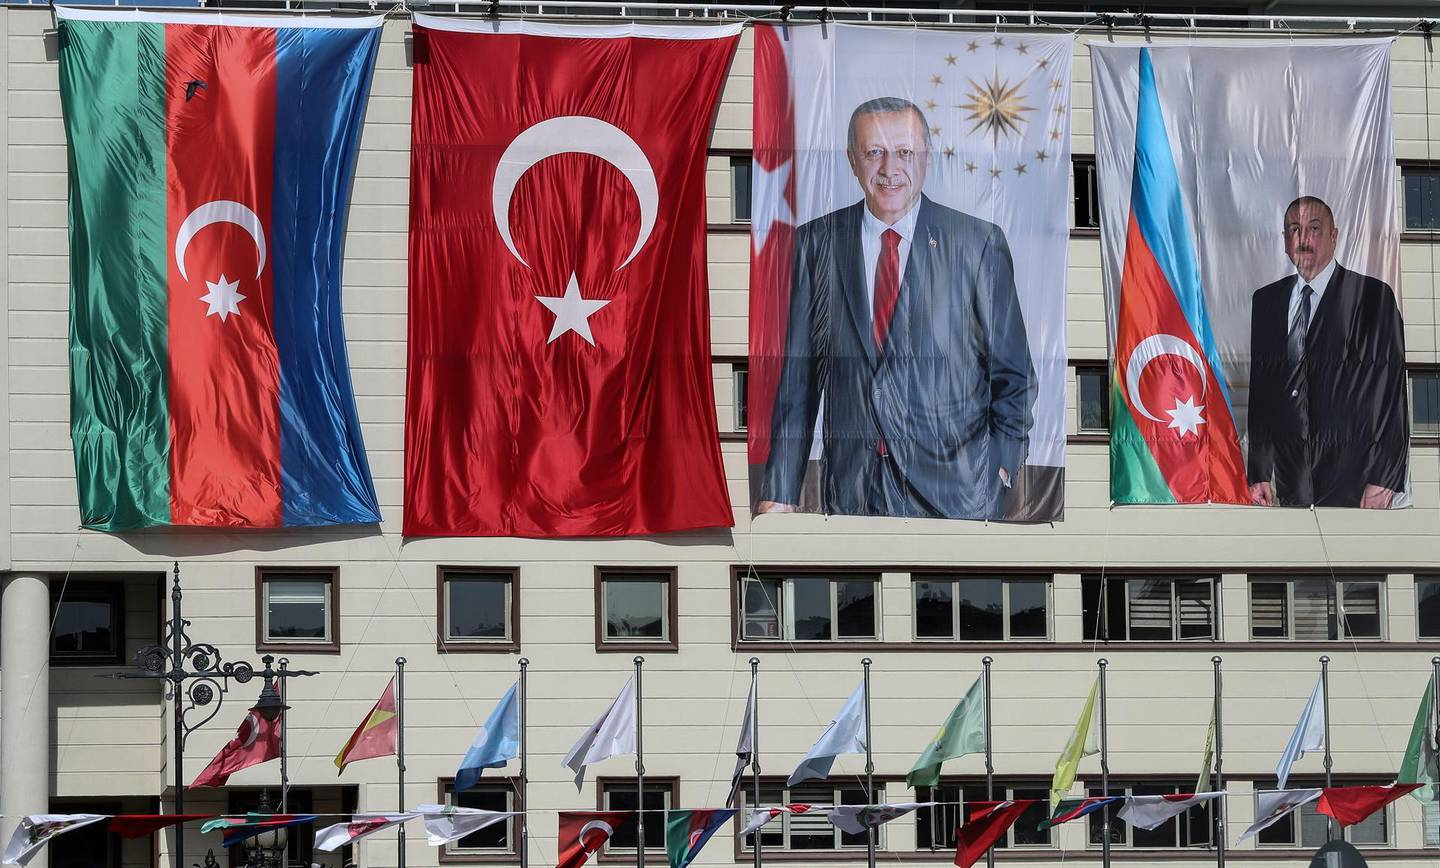 The national flags of Azerbaijan (L) and Turkey, and portraits of Turkish President Recep Tayyip Erdogan and Azerbaijani President Ilham Aliyev (R) hang side-by-side on the  mayoral building in the Kecioren district of Ankara on October 21, 2020.    The origins of a flareup in fighting over Nagorno-Karabakh that has now killed hundreds and threatens to involve regional powers Turkey and Russia are hotly contested and difficult to independently verify. Both sides accuse the other of striking first on September 27 over the ethnic Armenian region of Azerbaijan. / AFP / Adem ALTAN